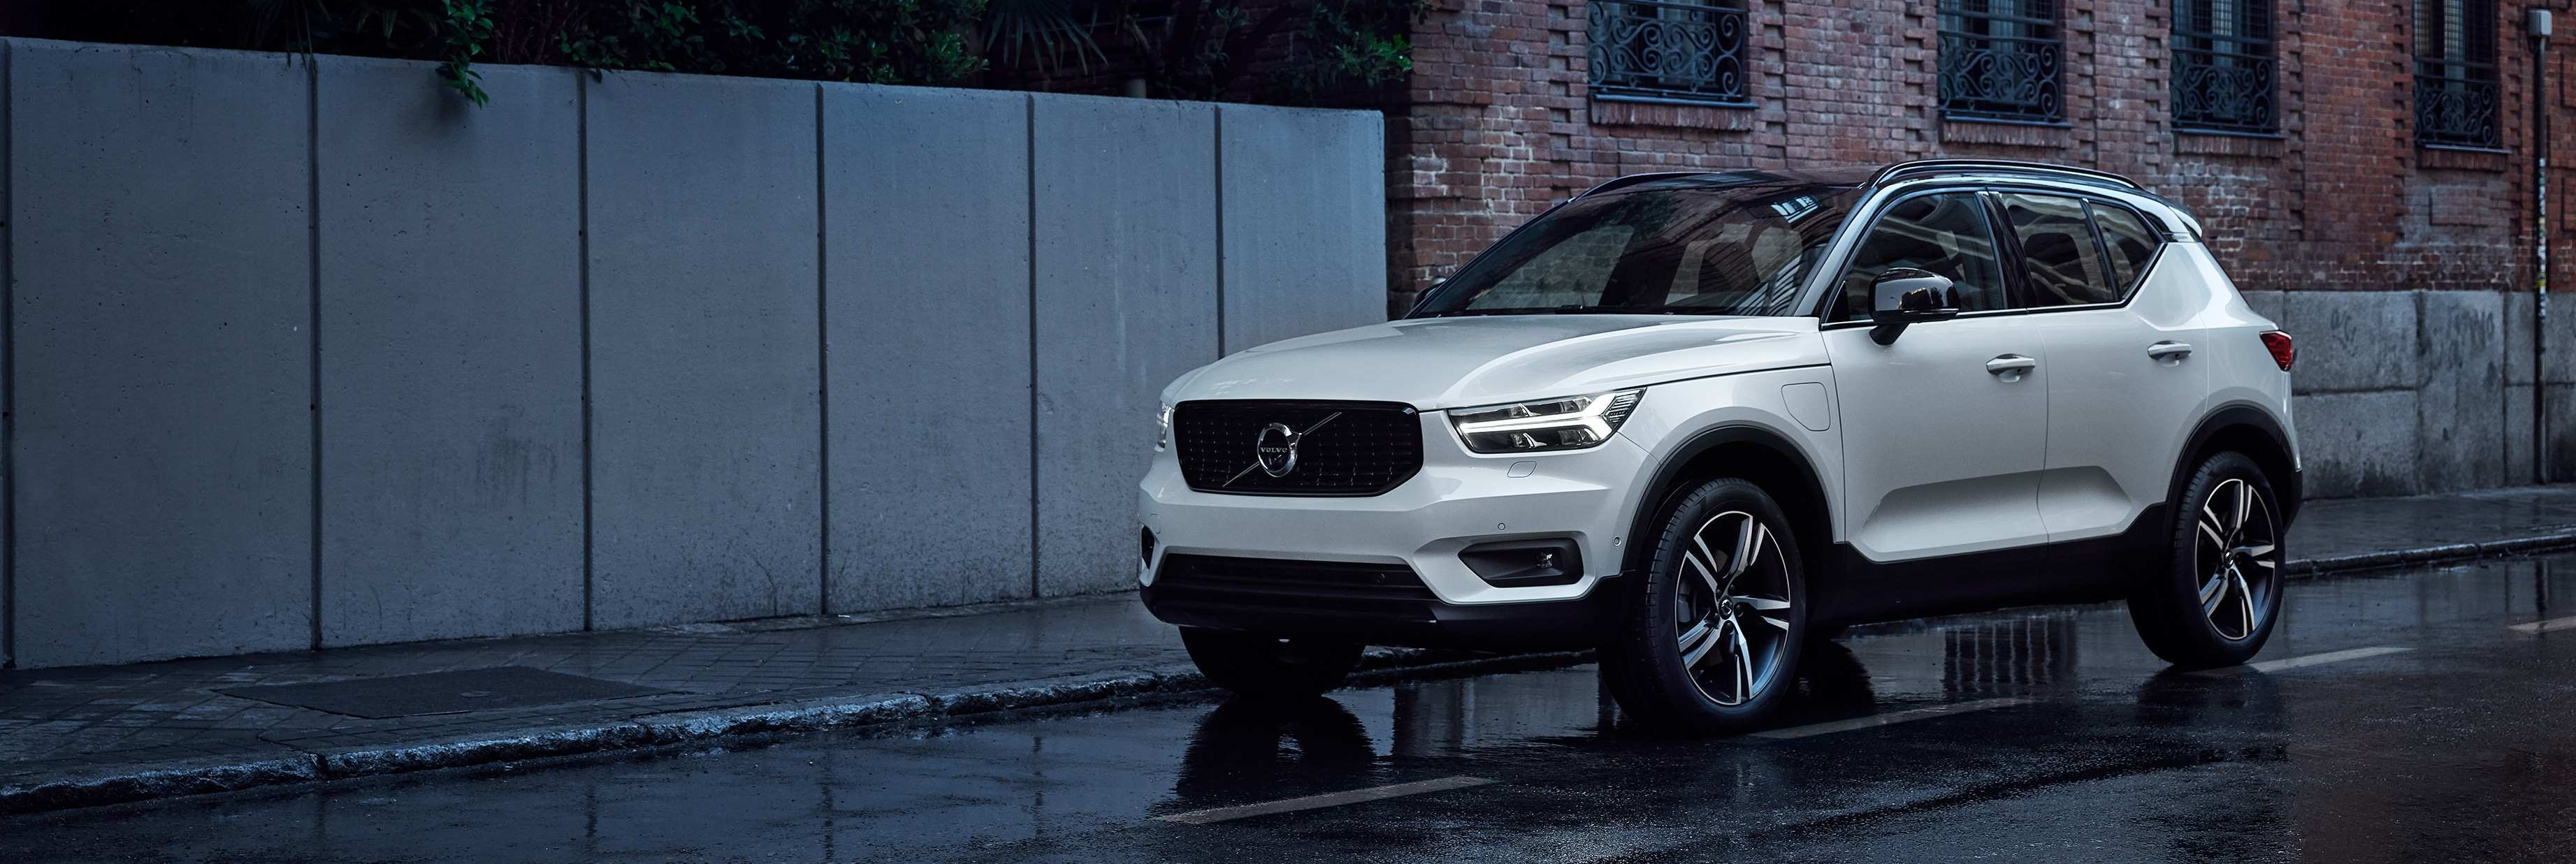 33 Great Difference Between 2019 And 2020 Volvo Xc90 Spy Shoot by Difference Between 2019 And 2020 Volvo Xc90